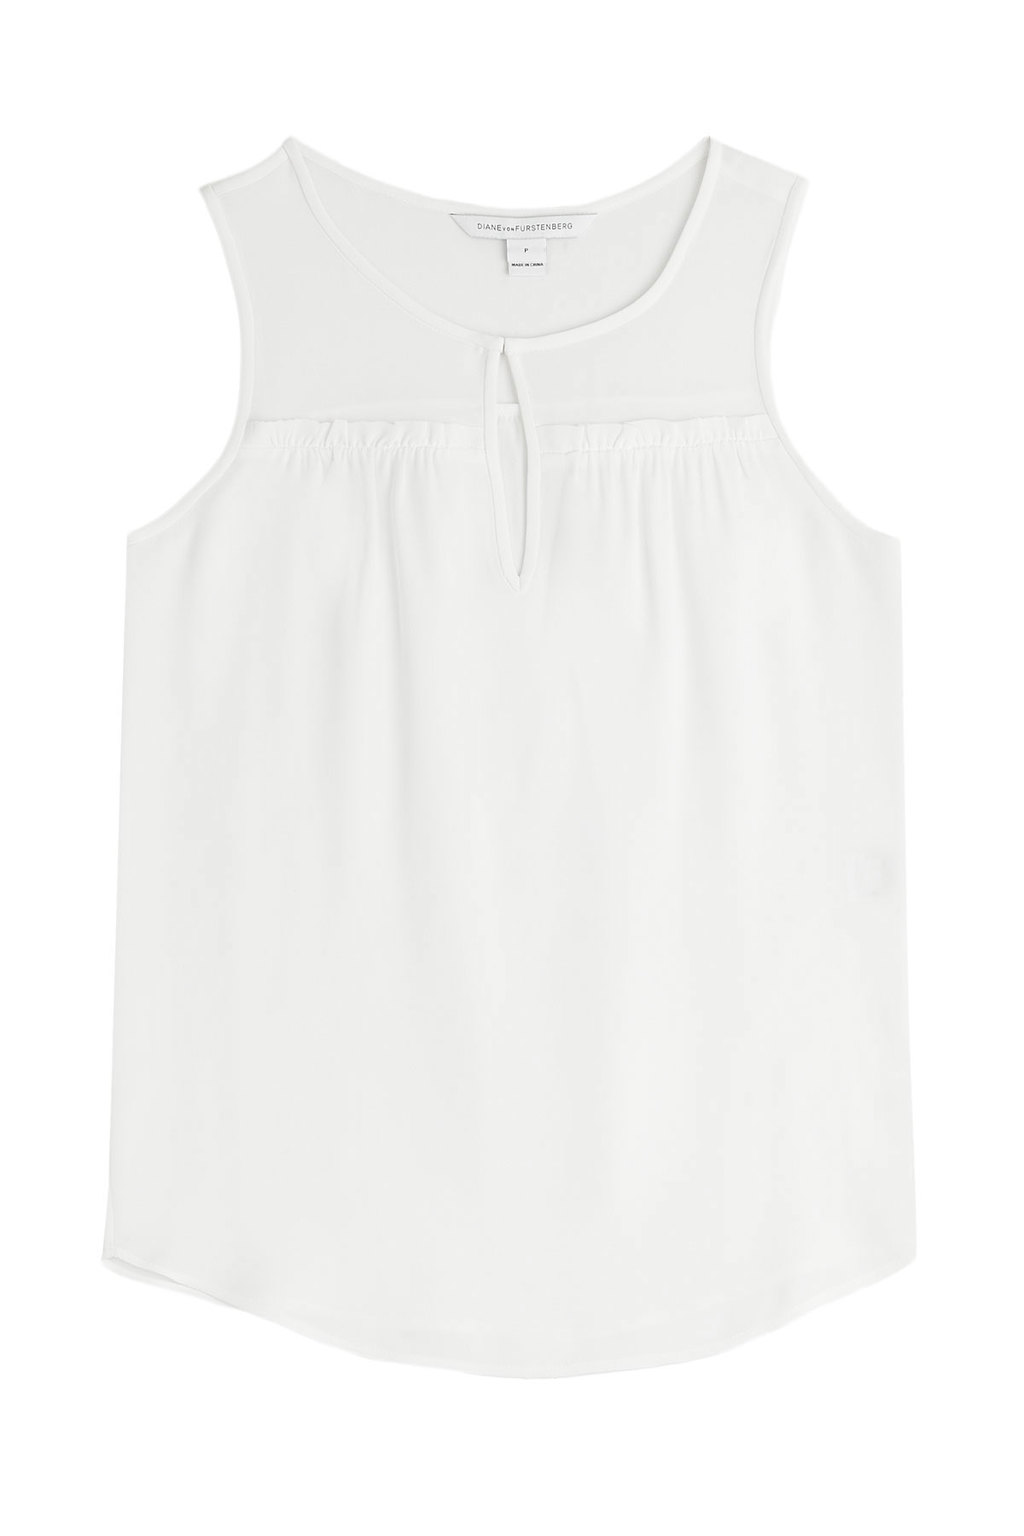 Silk Tank Top - pattern: plain; sleeve style: sleeveless; predominant colour: white; occasions: casual; length: standard; style: top; neckline: peep hole neckline; fibres: silk - 100%; fit: straight cut; sleeve length: sleeveless; texture group: silky - light; pattern type: fabric; season: s/s 2016; wardrobe: basic